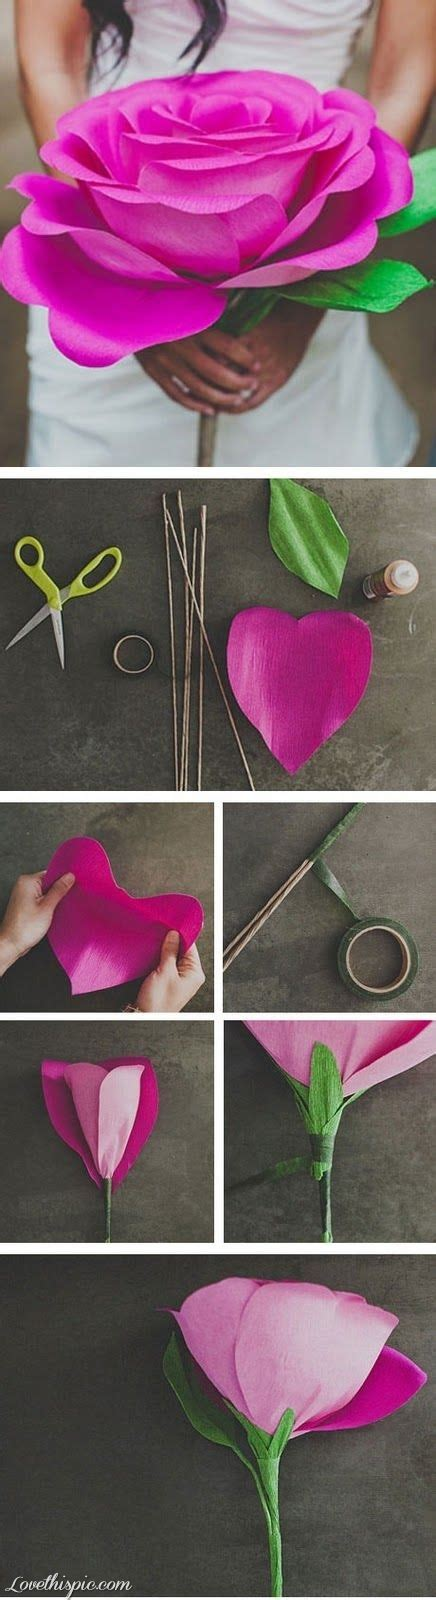 diy paper flower crafts diy paper flowers pictures photos and images for